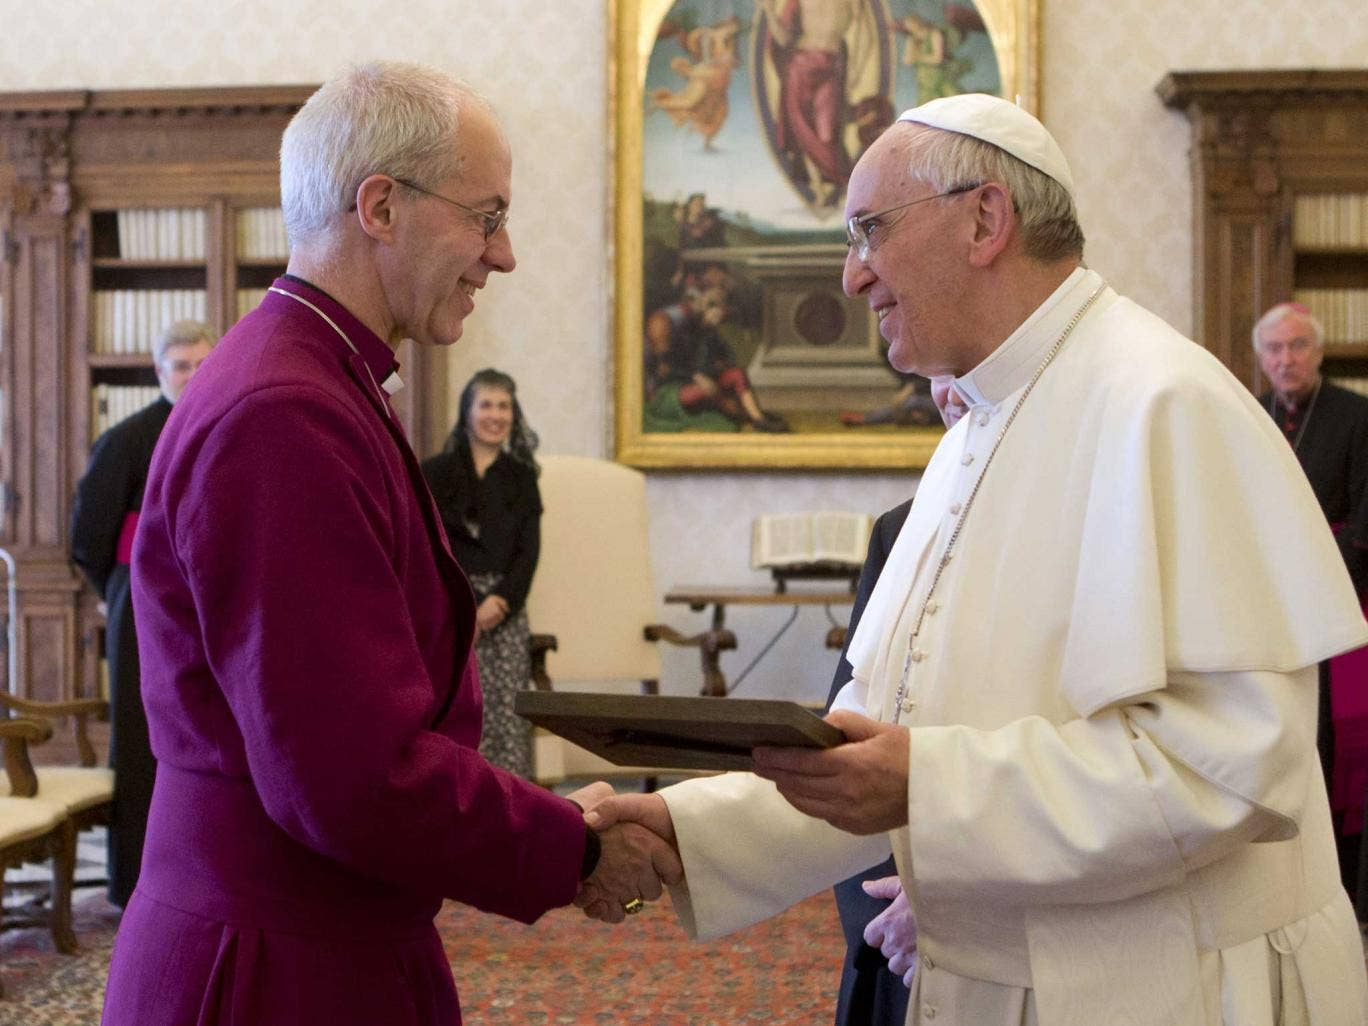 Pope Francis welcomes the Archbishop of Canterbury